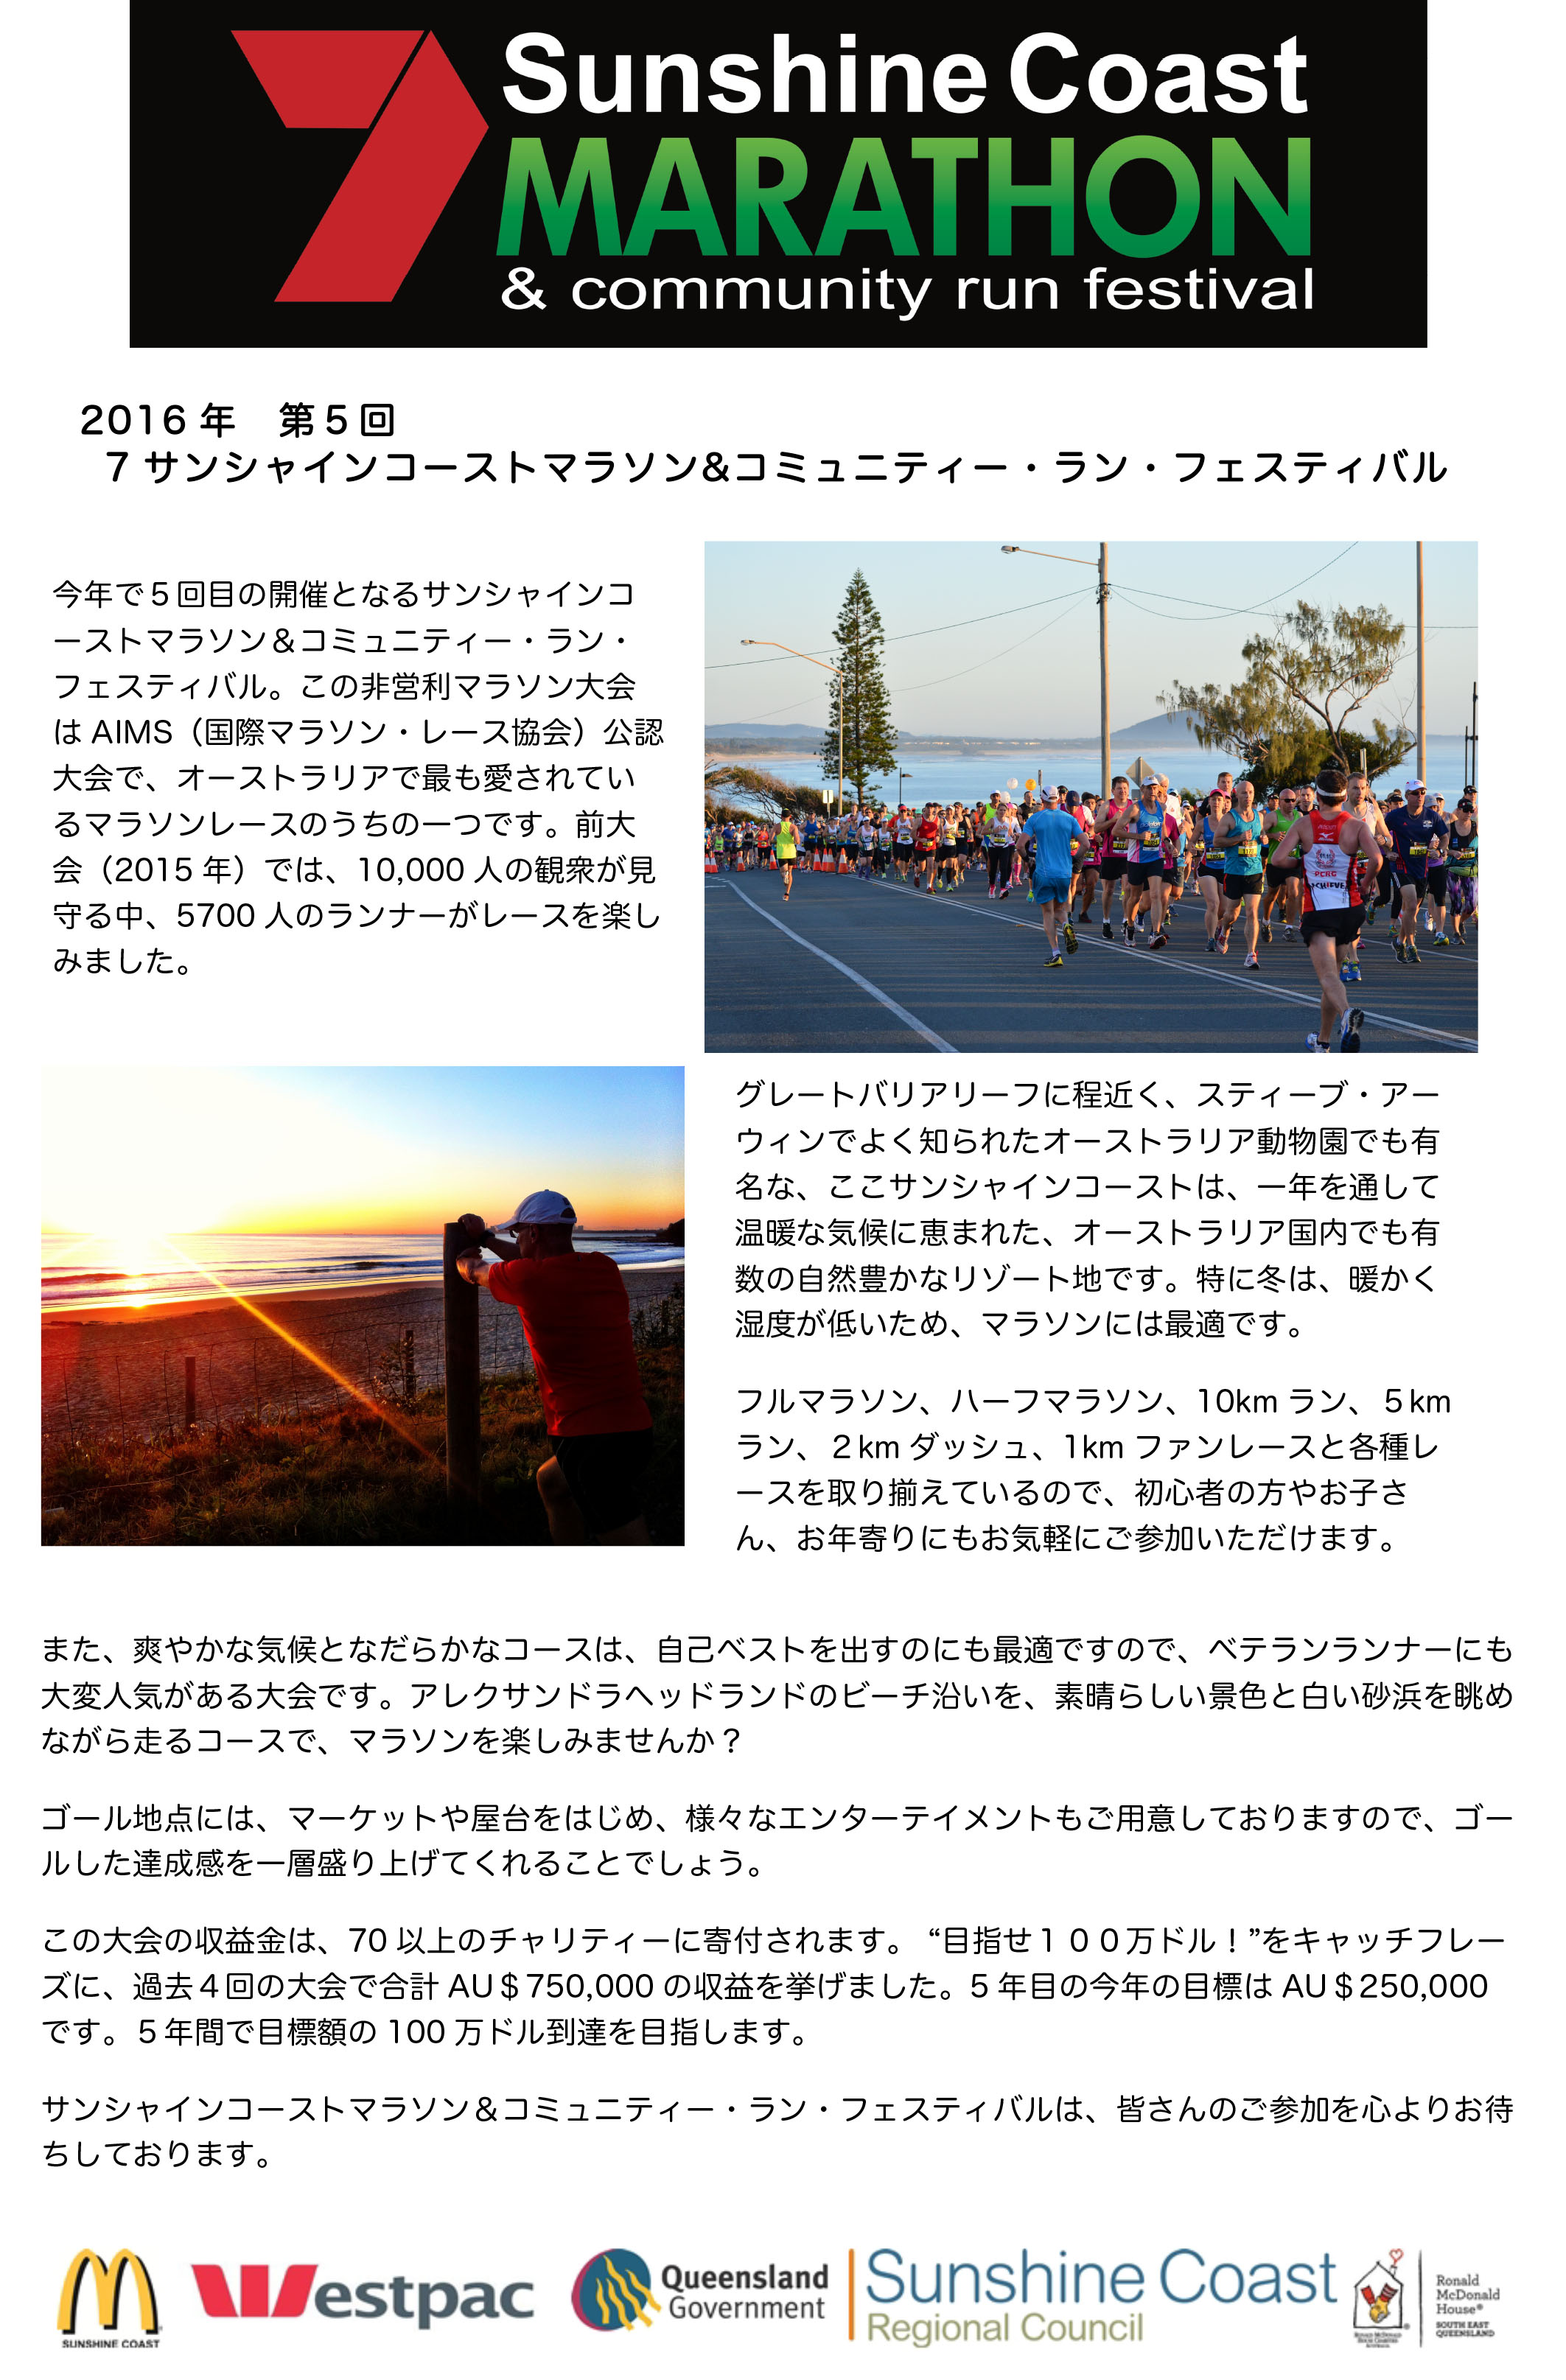 Microsoft Word - 7 Sunshine Coast Marathon Fact Sheet 2016 no tr